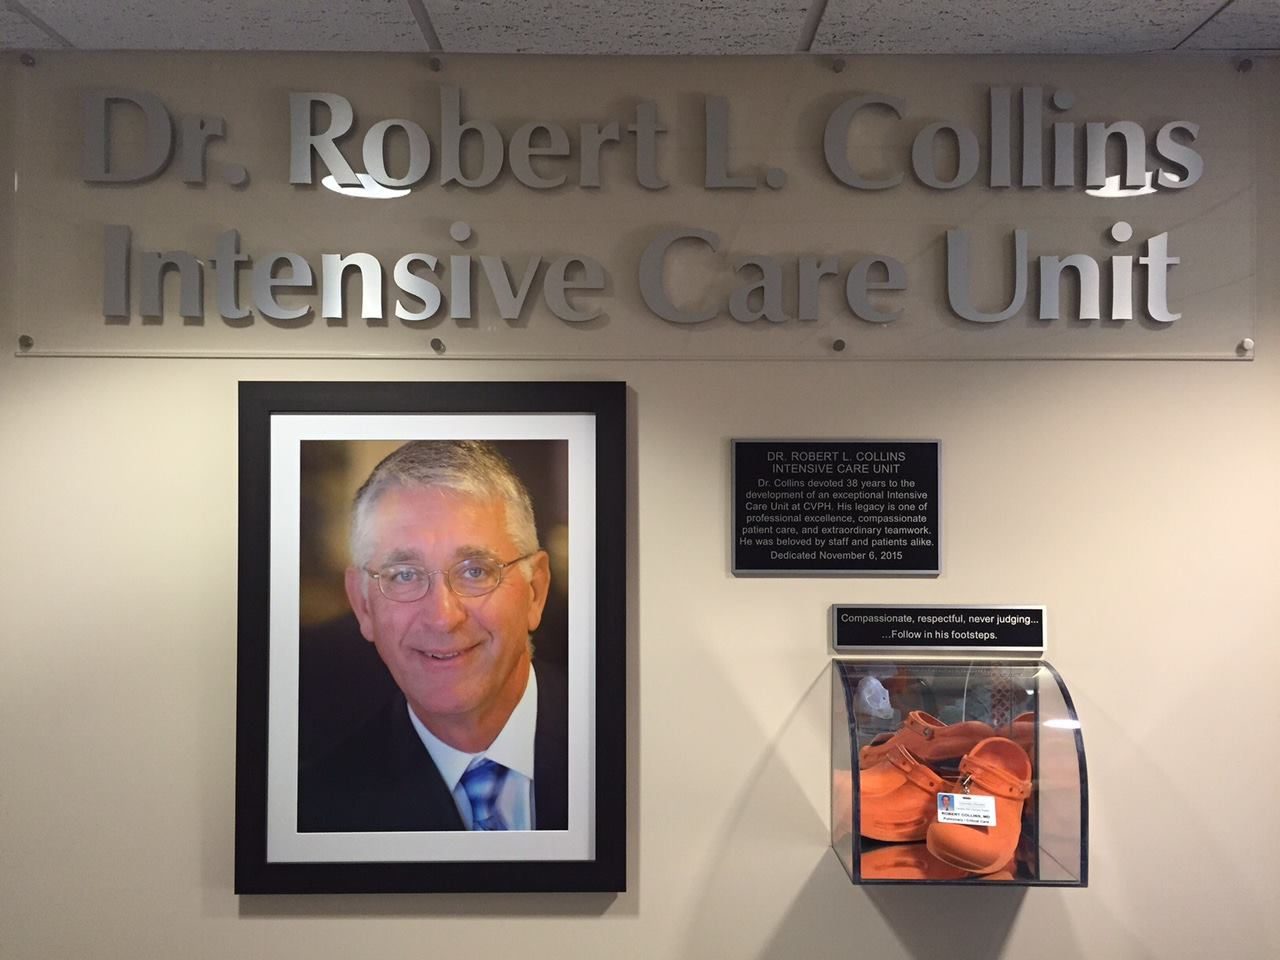 Dr. Robert L. Collins ICU